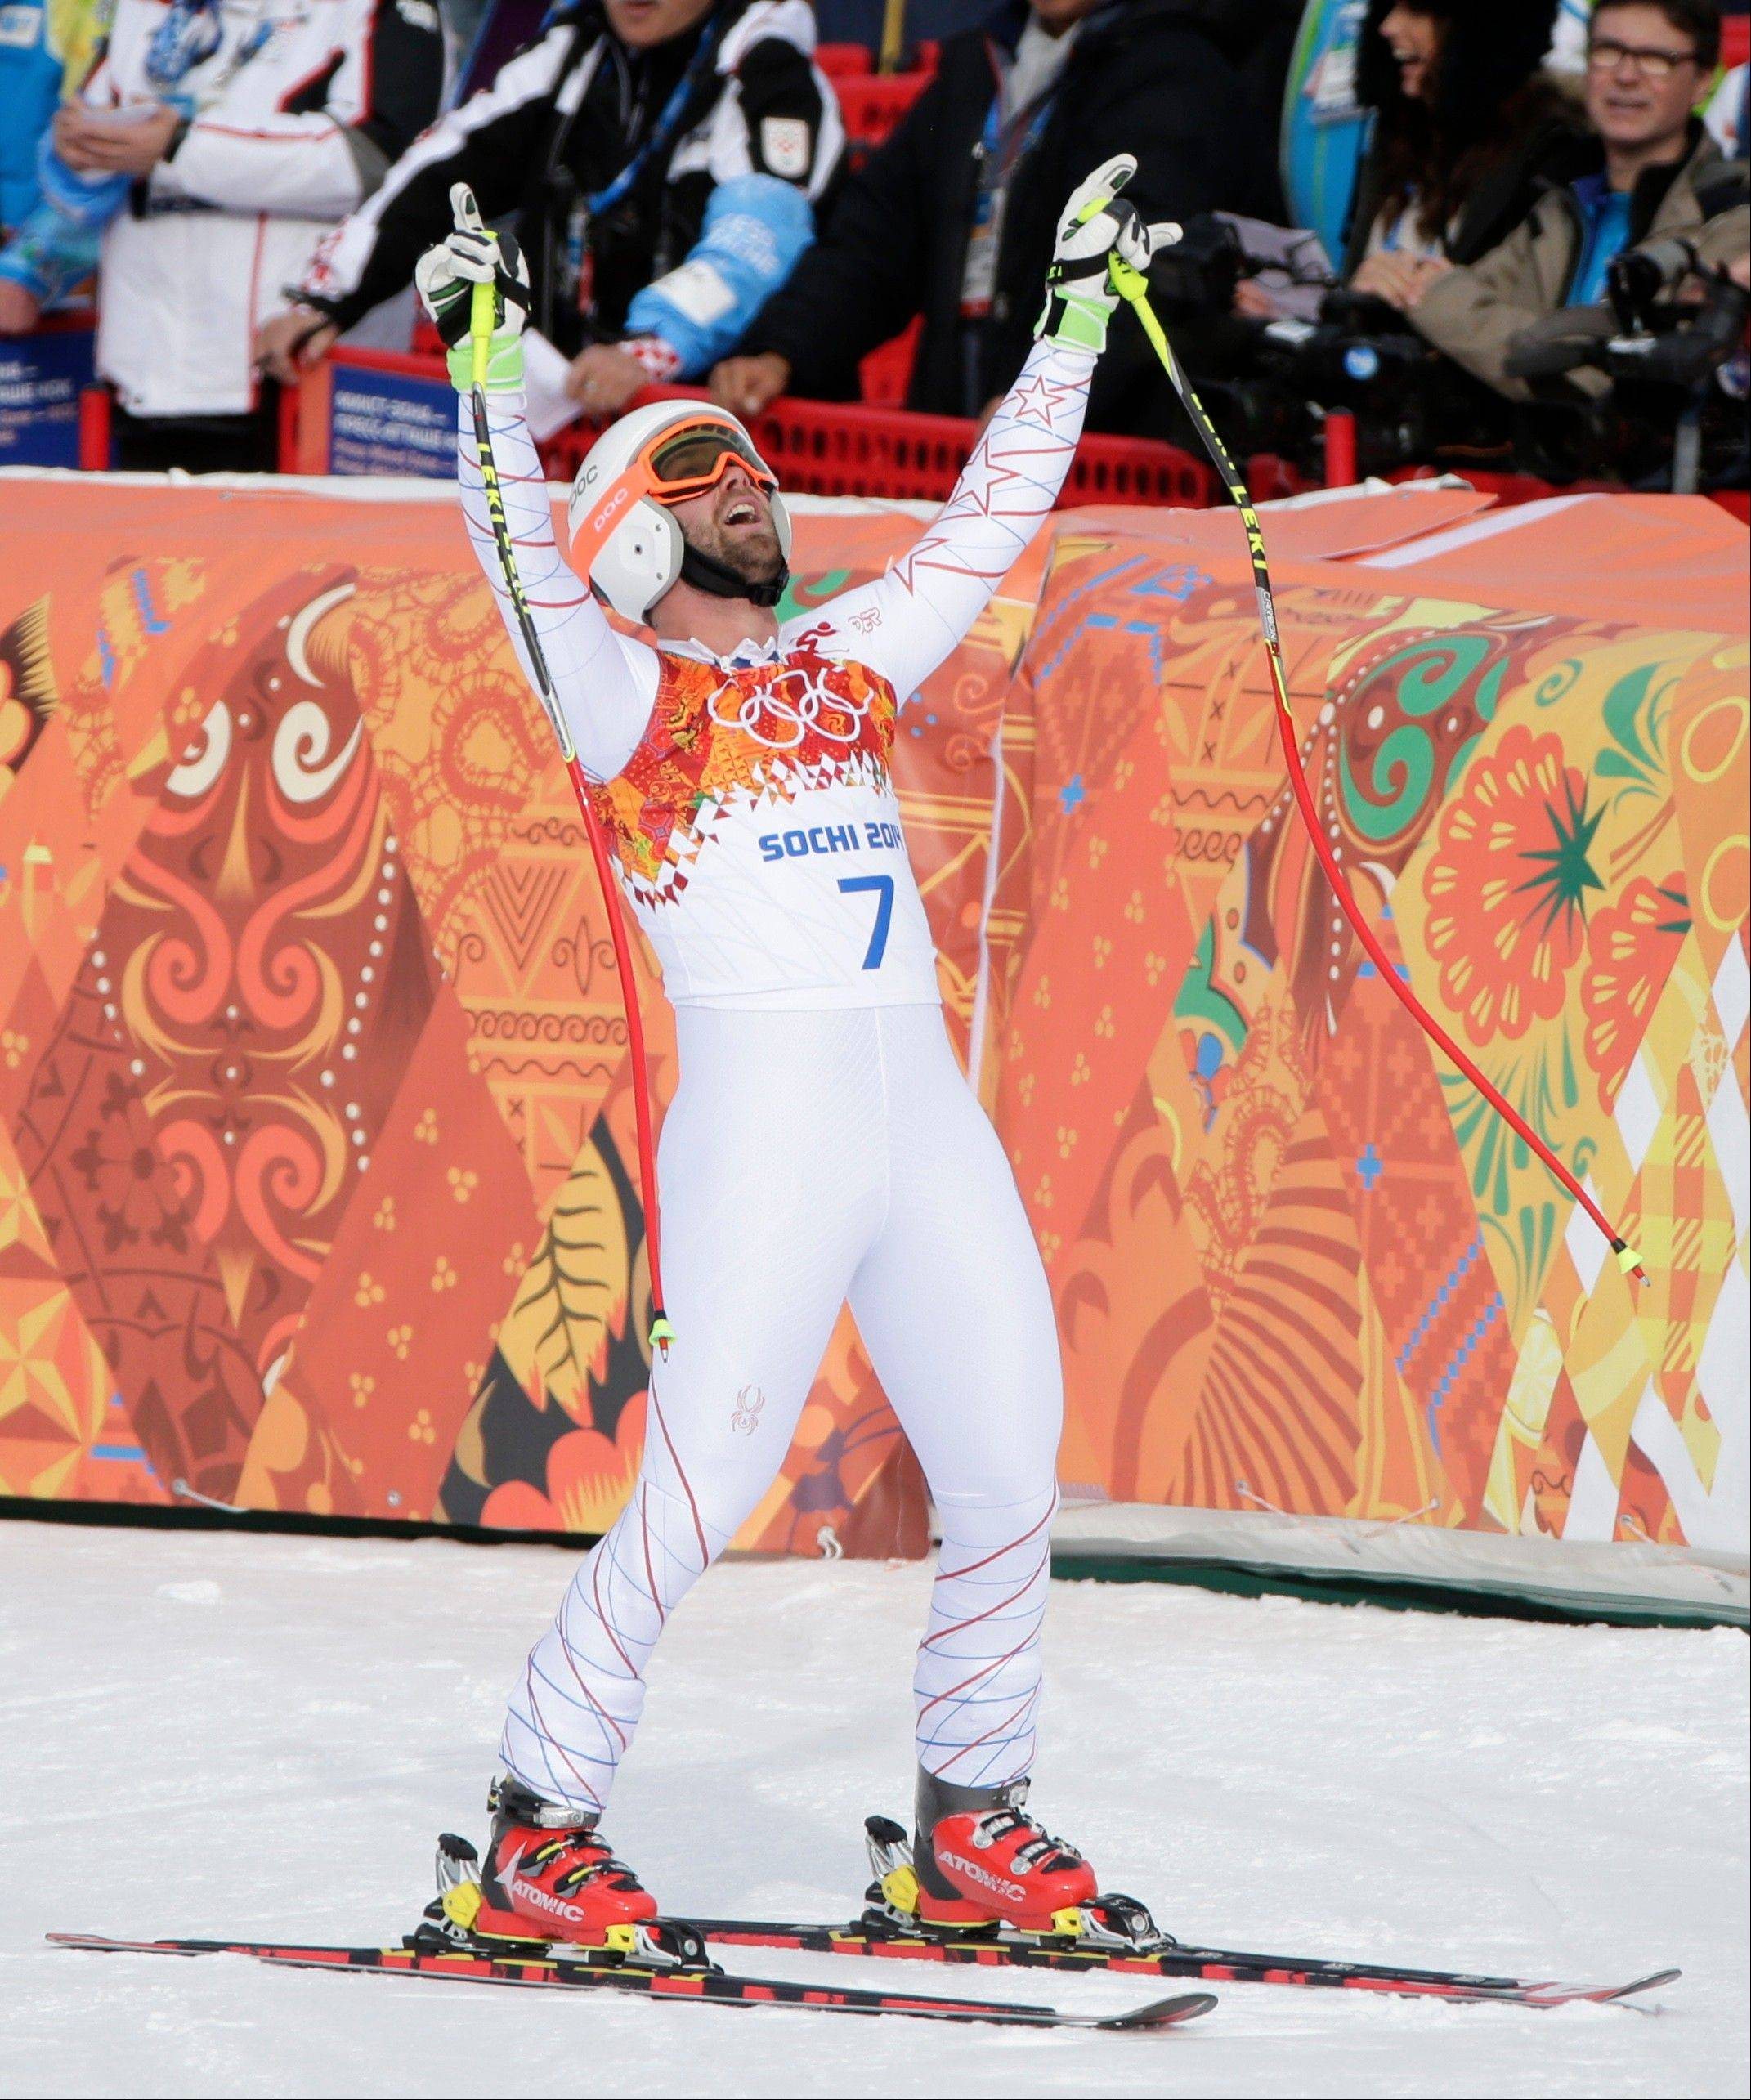 United States' Travis Ganong reacts after finishing the men's downhill at the Sochi 2014 Winter Olympics, Sunday, Feb. 9, 2014, in Krasnaya Polyana, Russia.